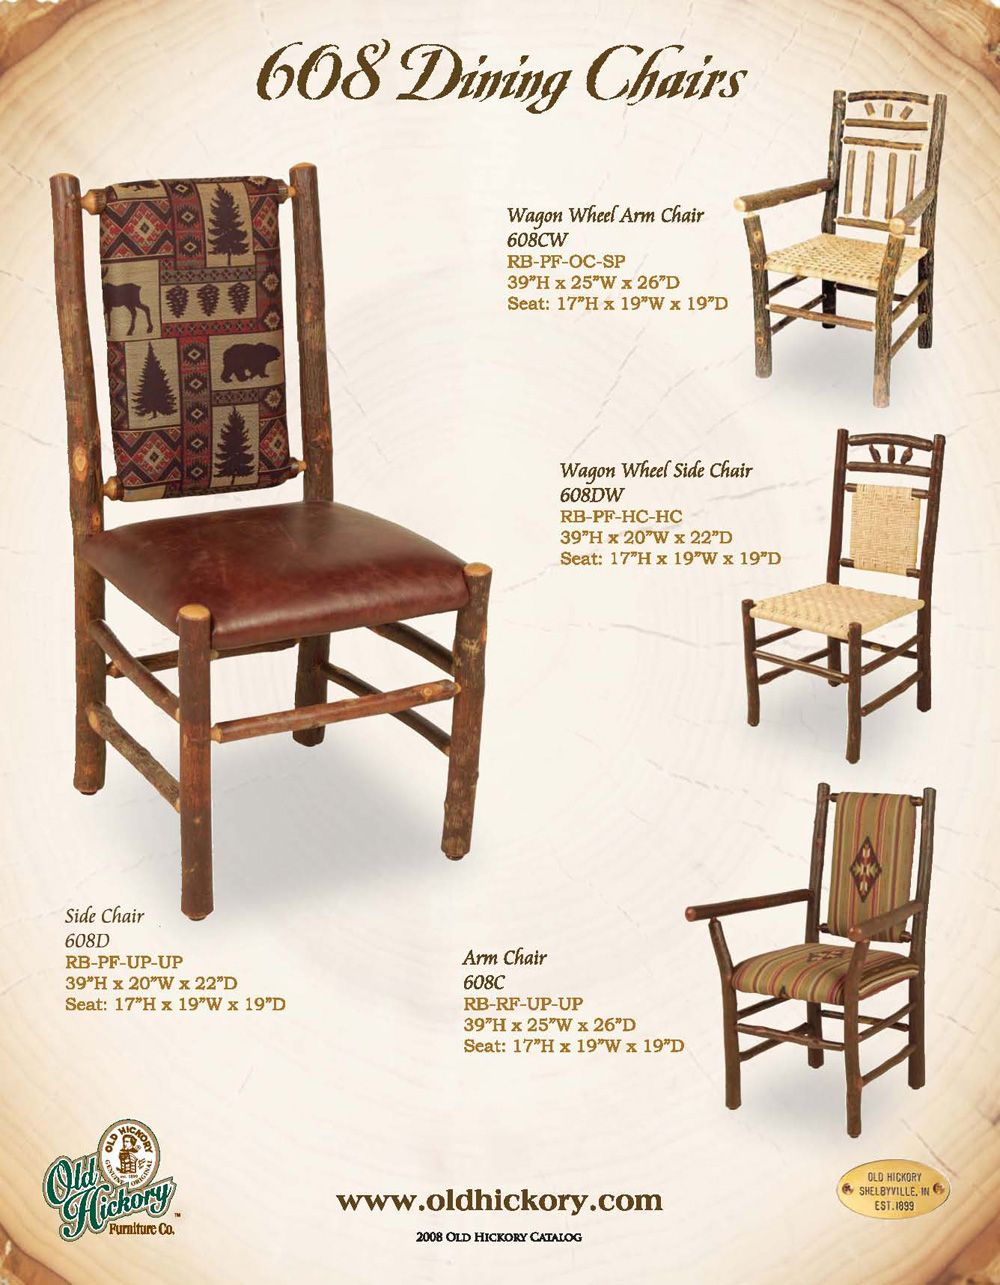 Old Hickory Furniture Co 608 Dining Chairs Available at